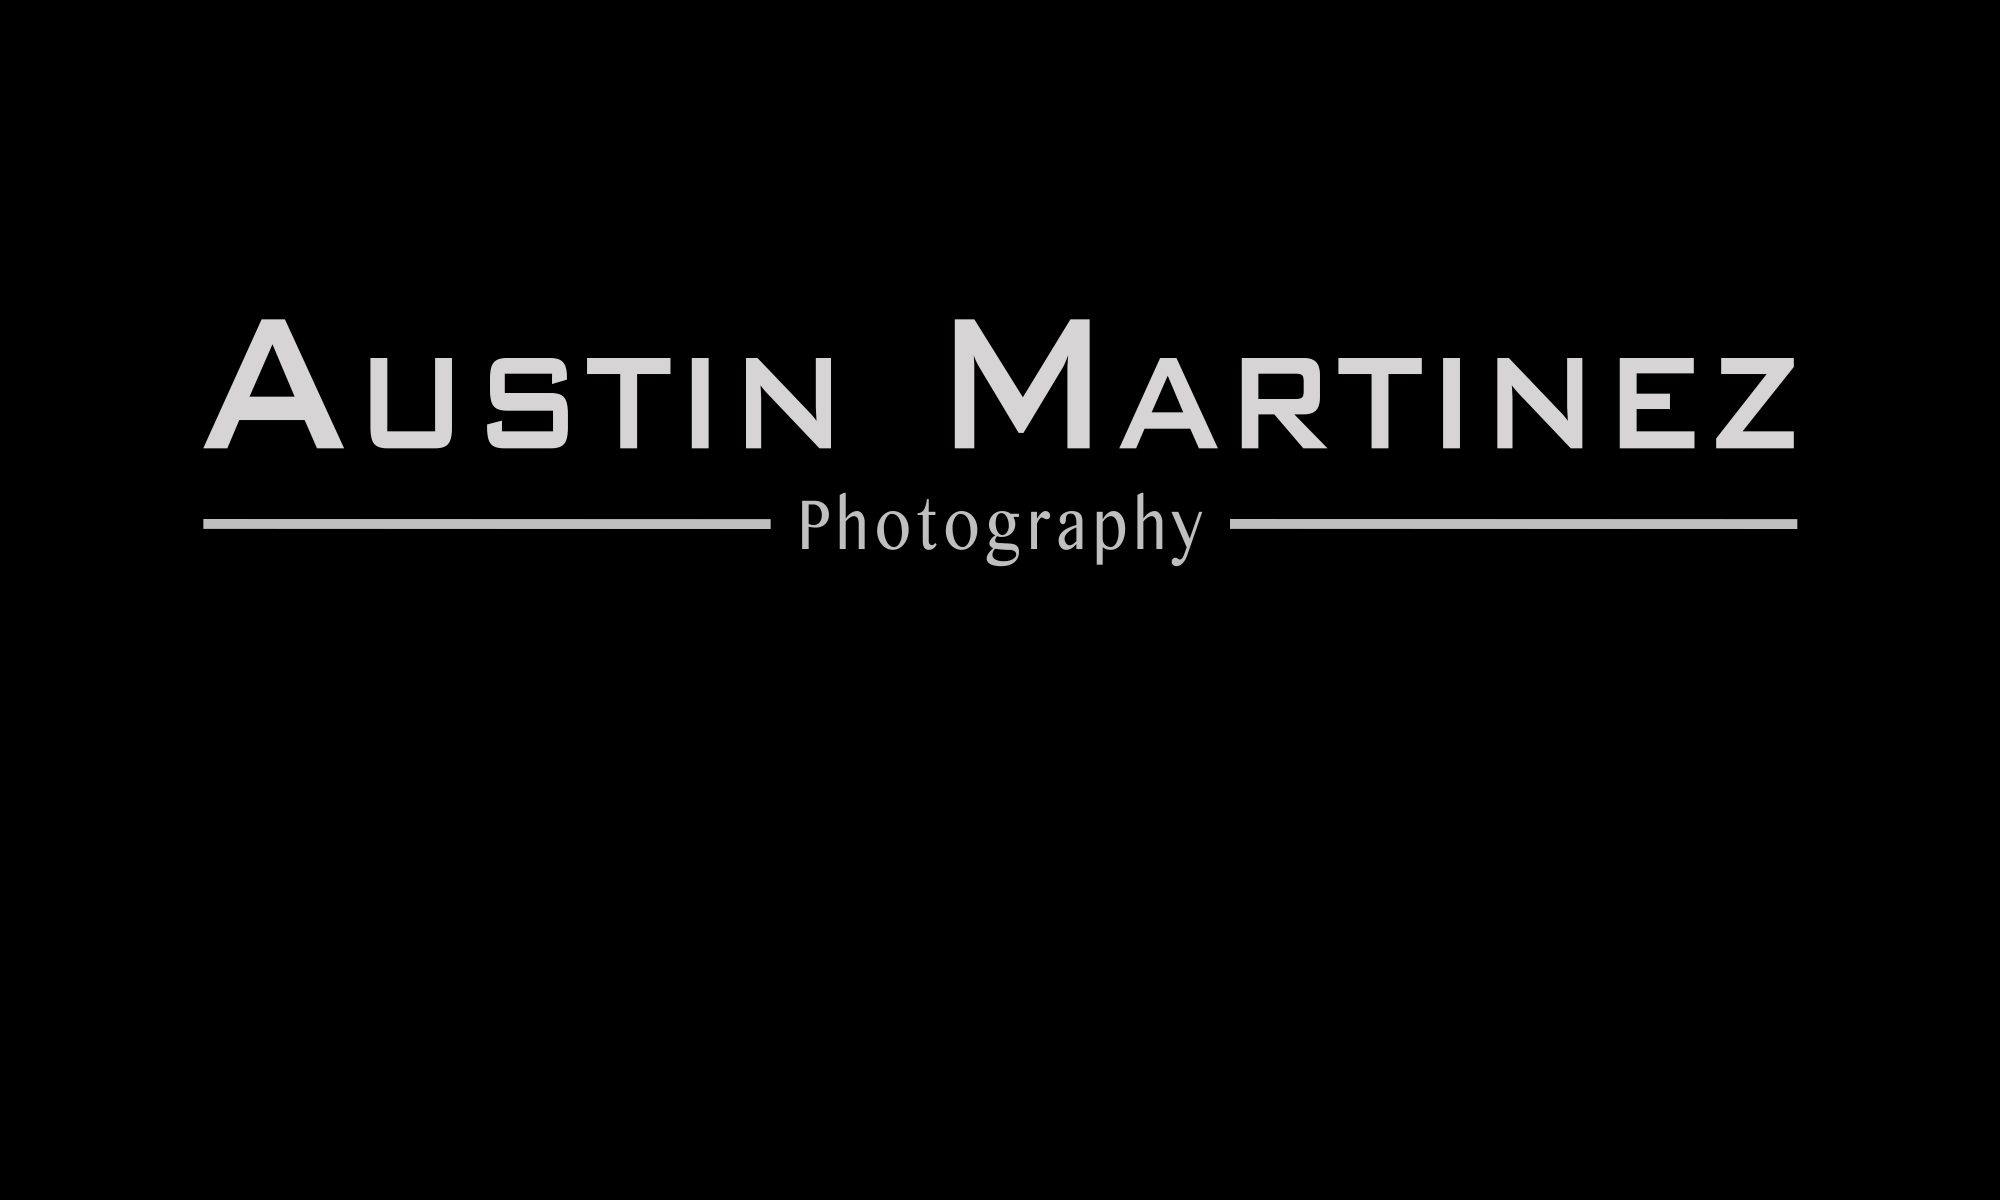 Austin Martinez Photography